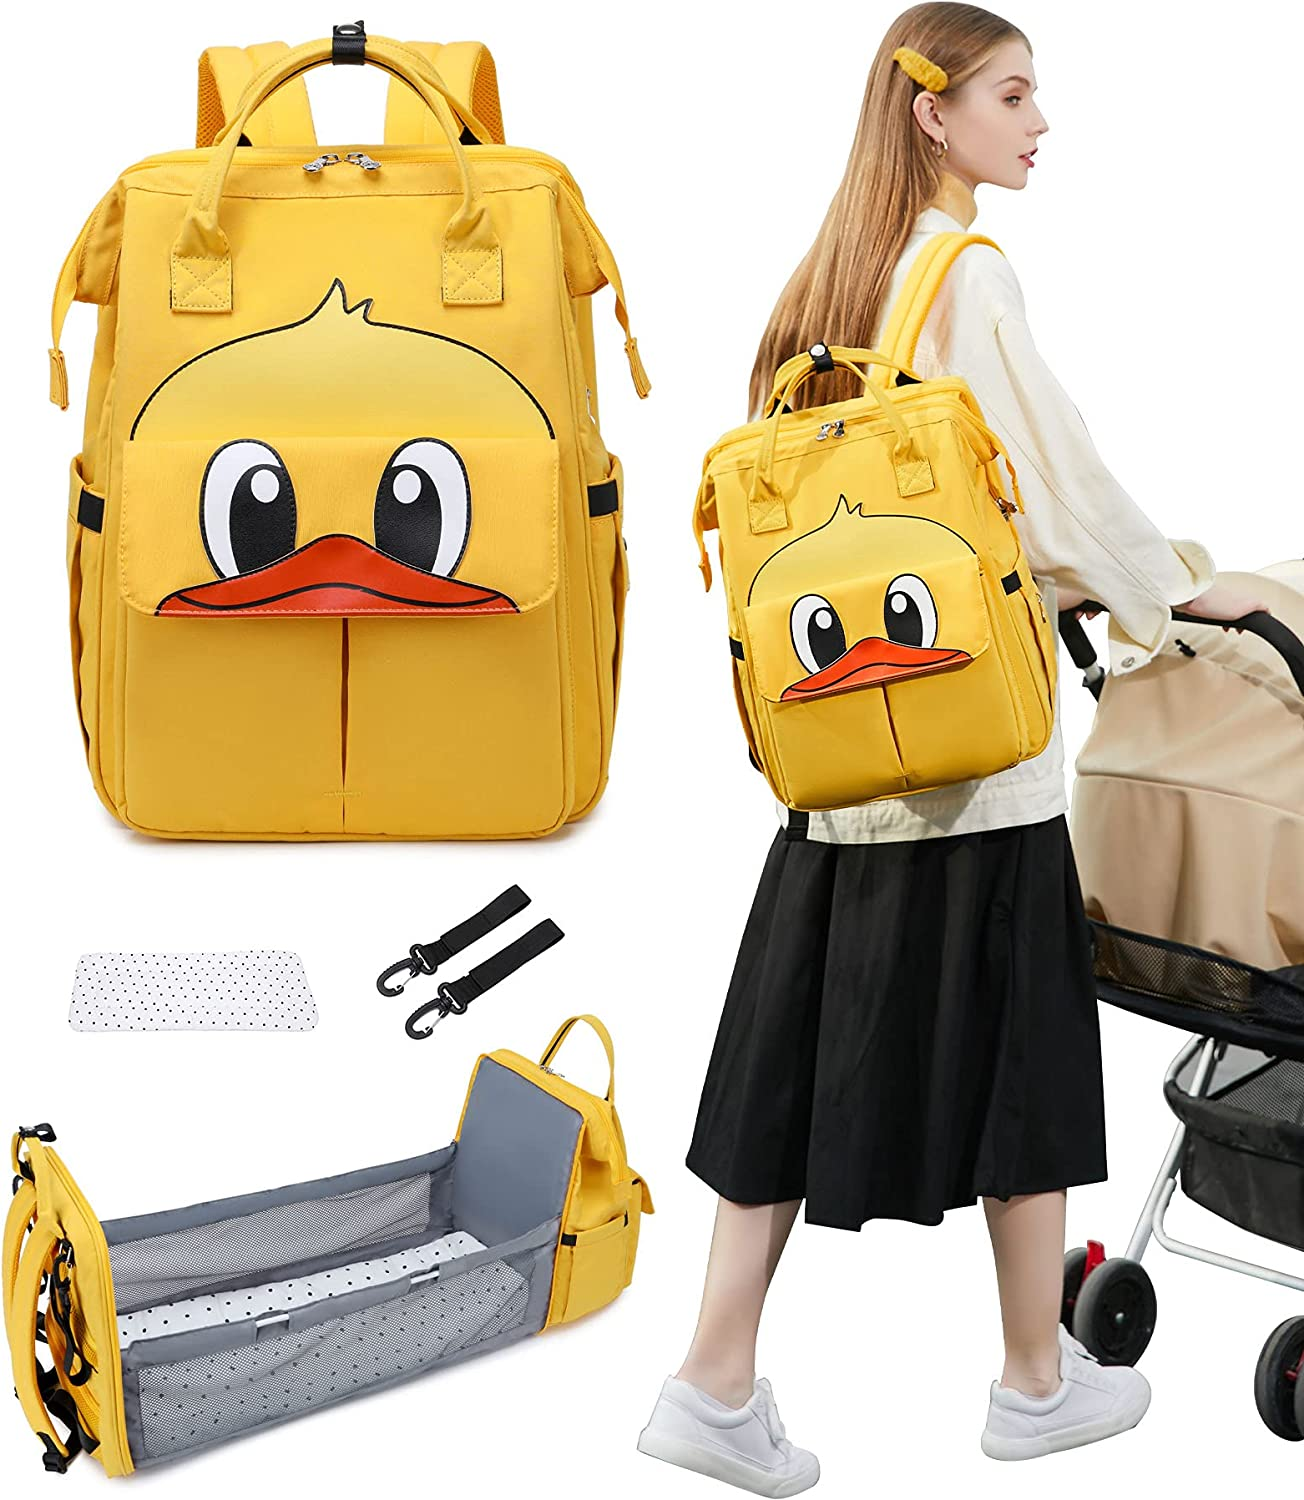 Diaper Bag with Changing Station, Bag Backpack Travel Foldable, Large Capacity Mummy Diaper Bag Backpack with Design